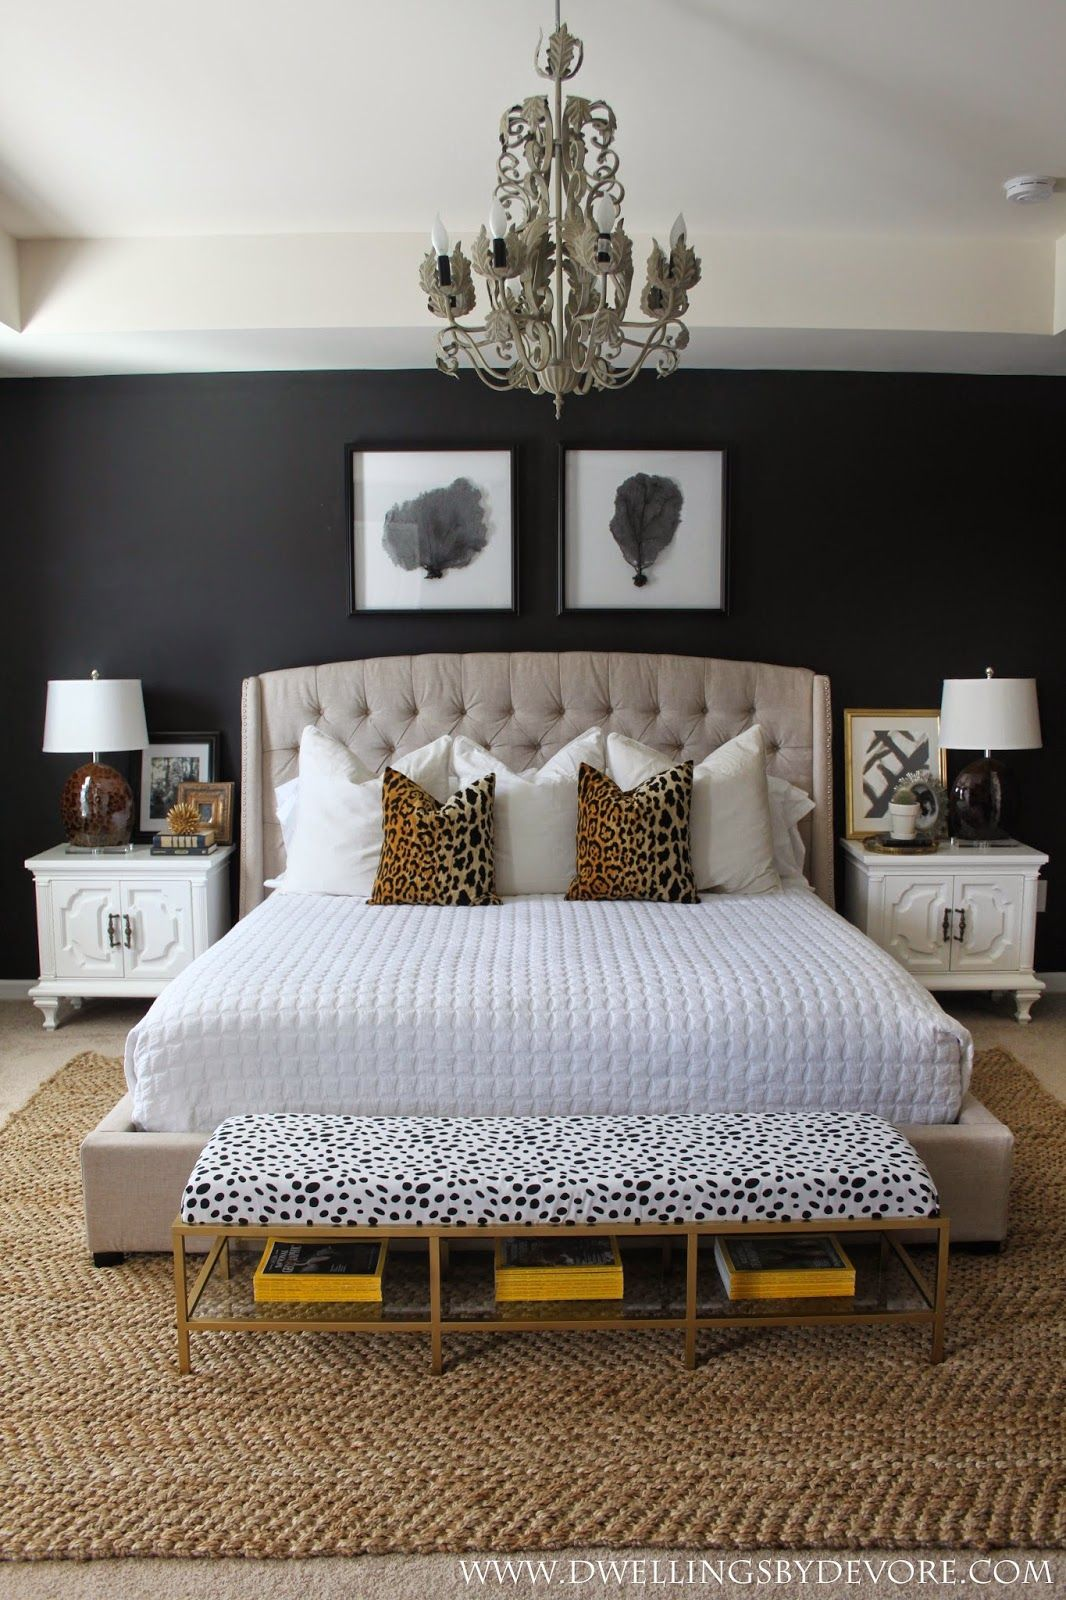 20 accent wall ideas youll surely wish to try this at home - Black White Bedroom Decorating Ideas